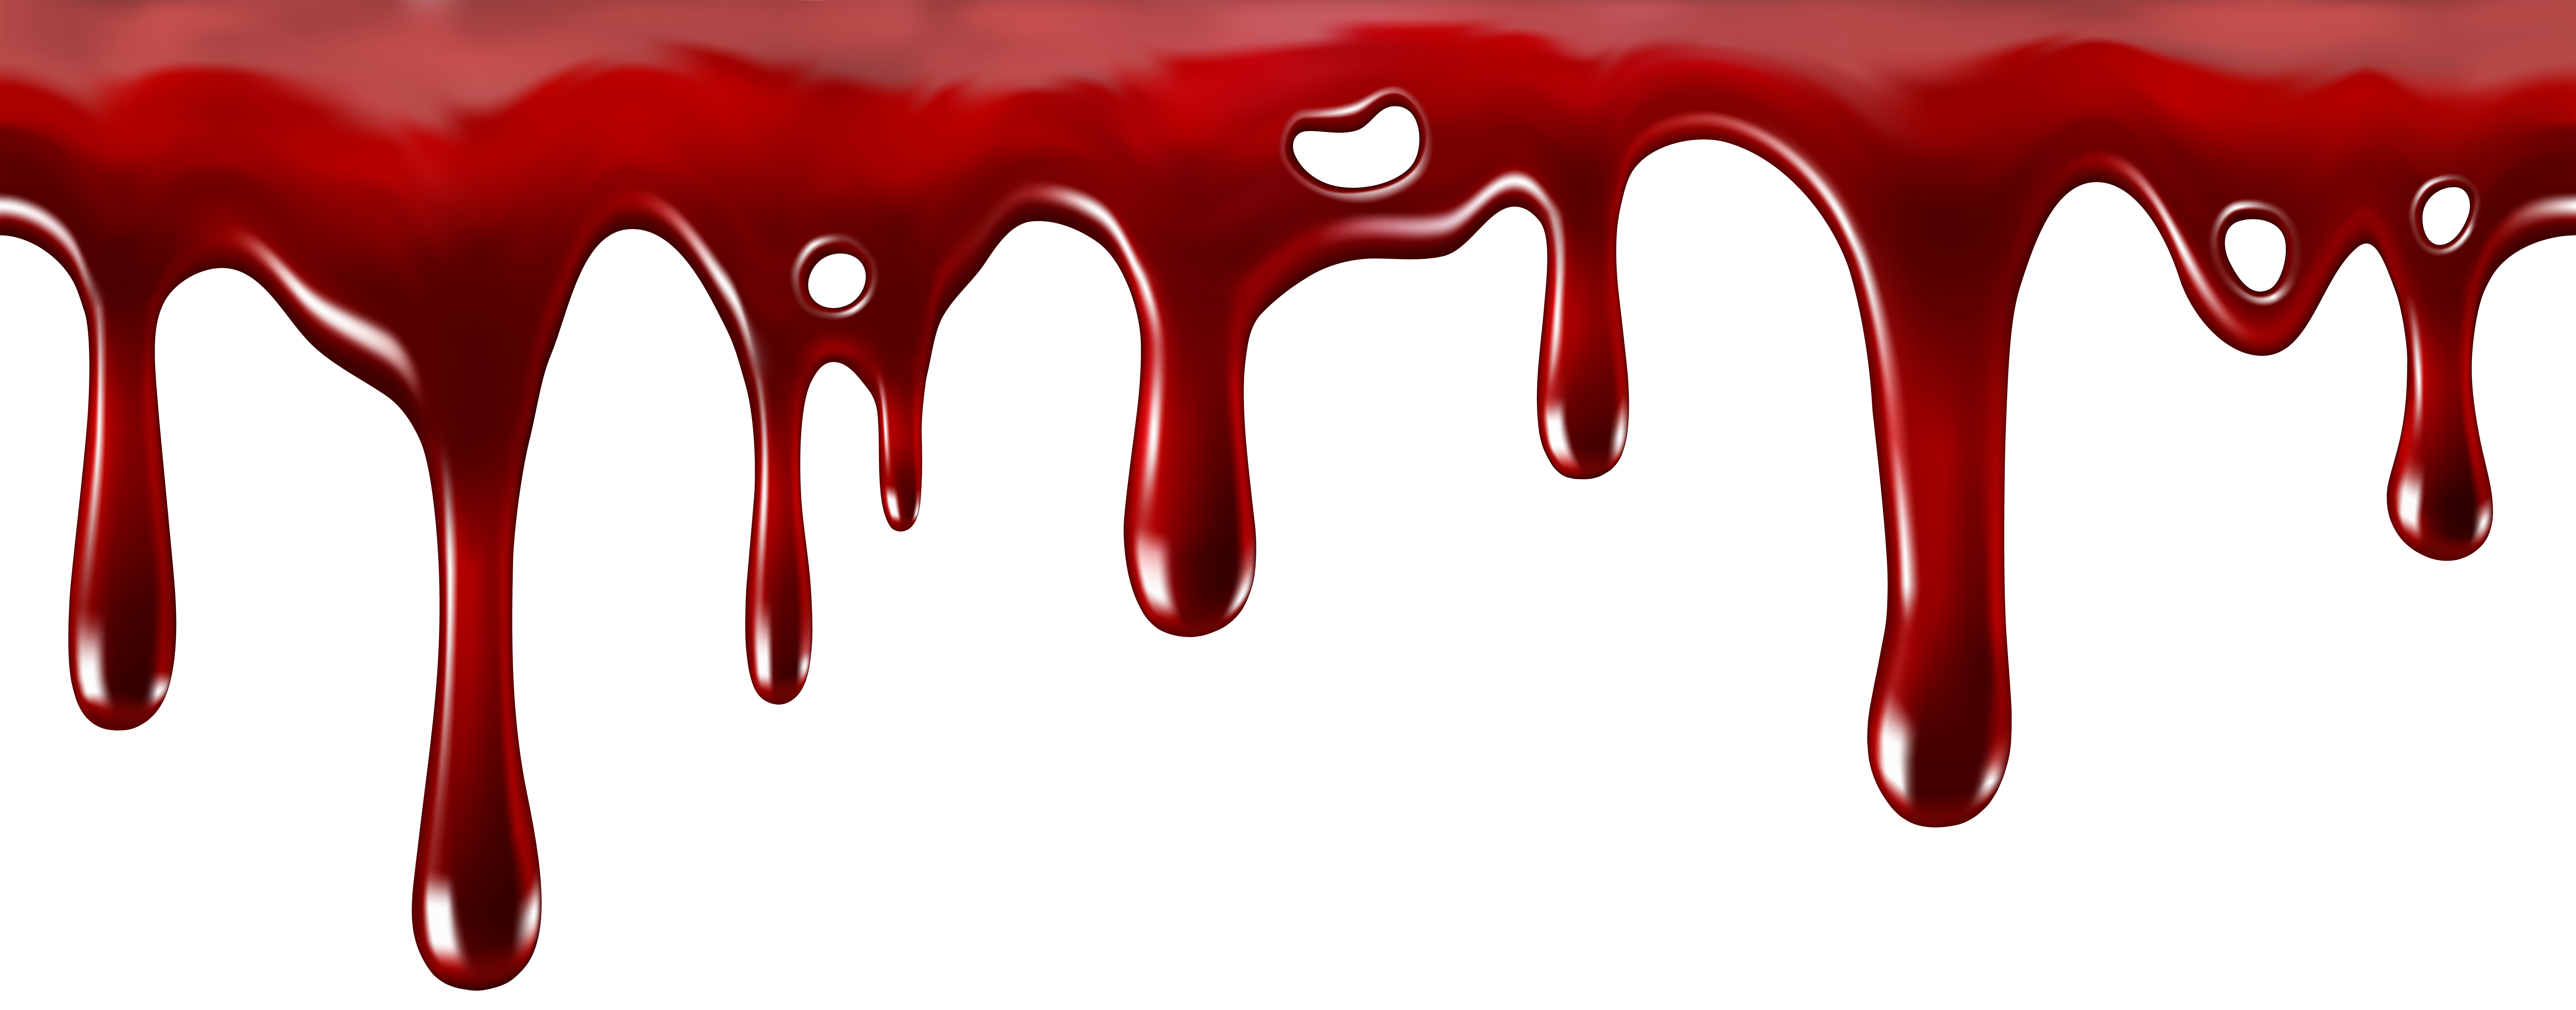 Png Vector Blood Drip